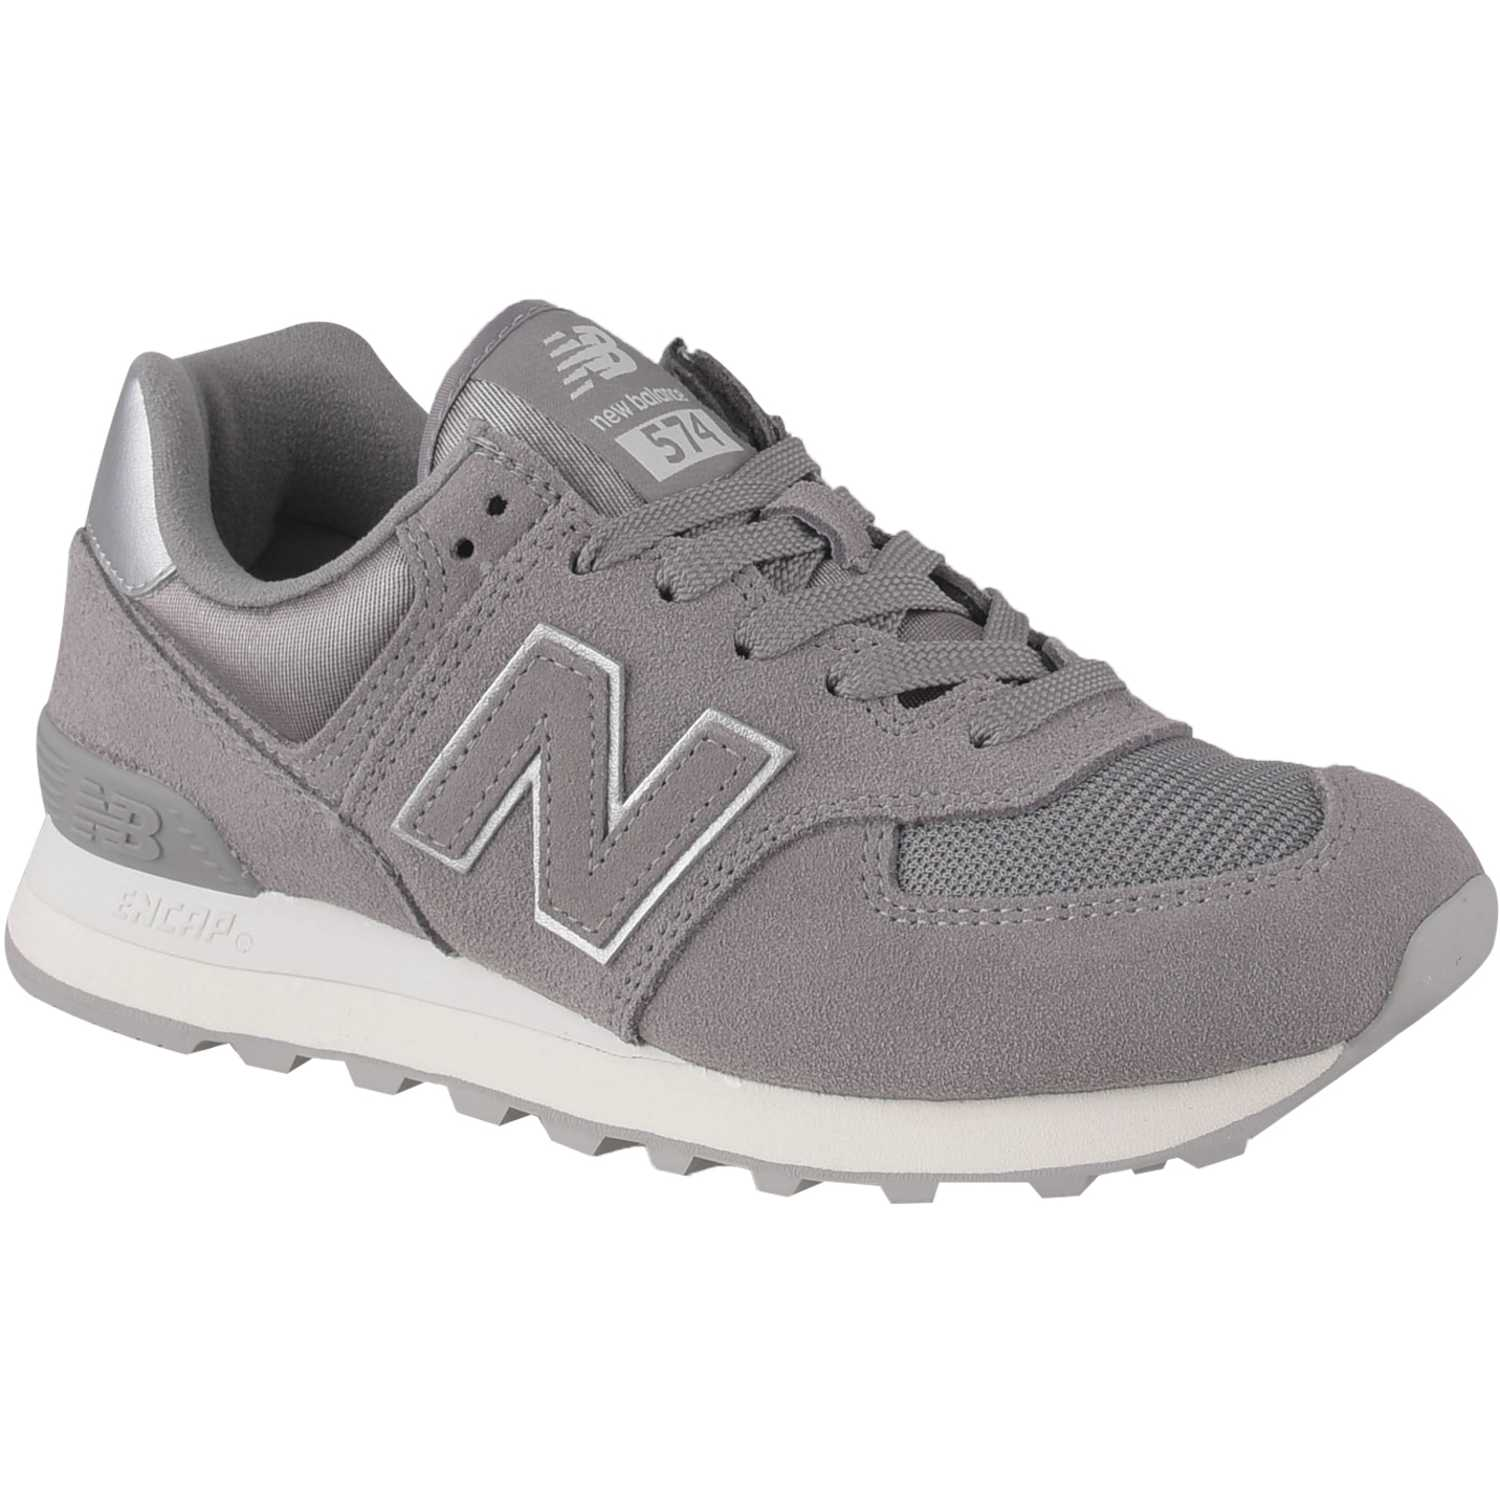 New Balance 574 Gris / blanco Walking | platanitos.com